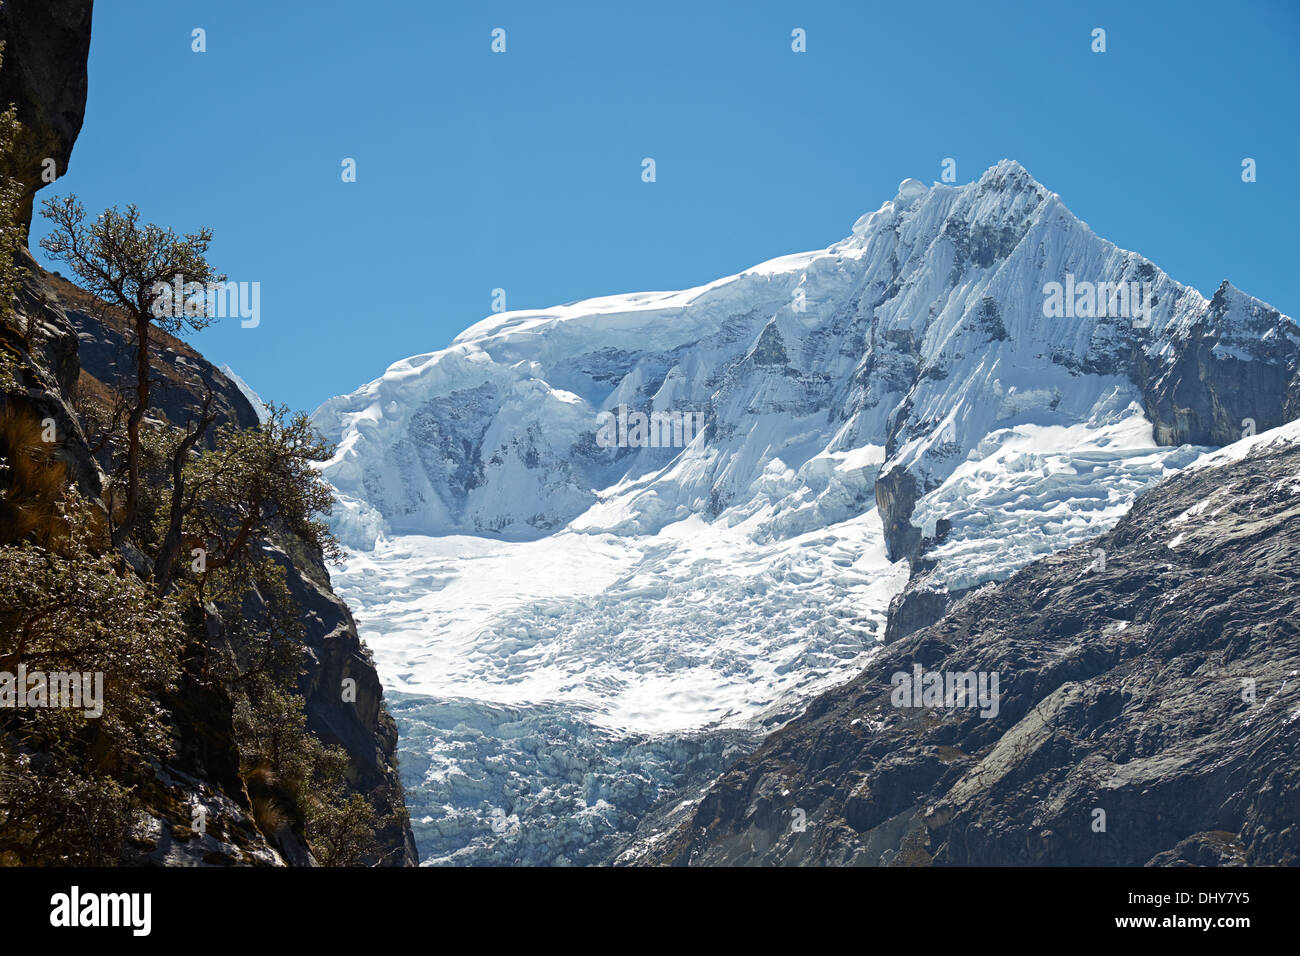 Ranrapalca Summit (6162m) in the Peruvian Andes, South America. - Stock Image